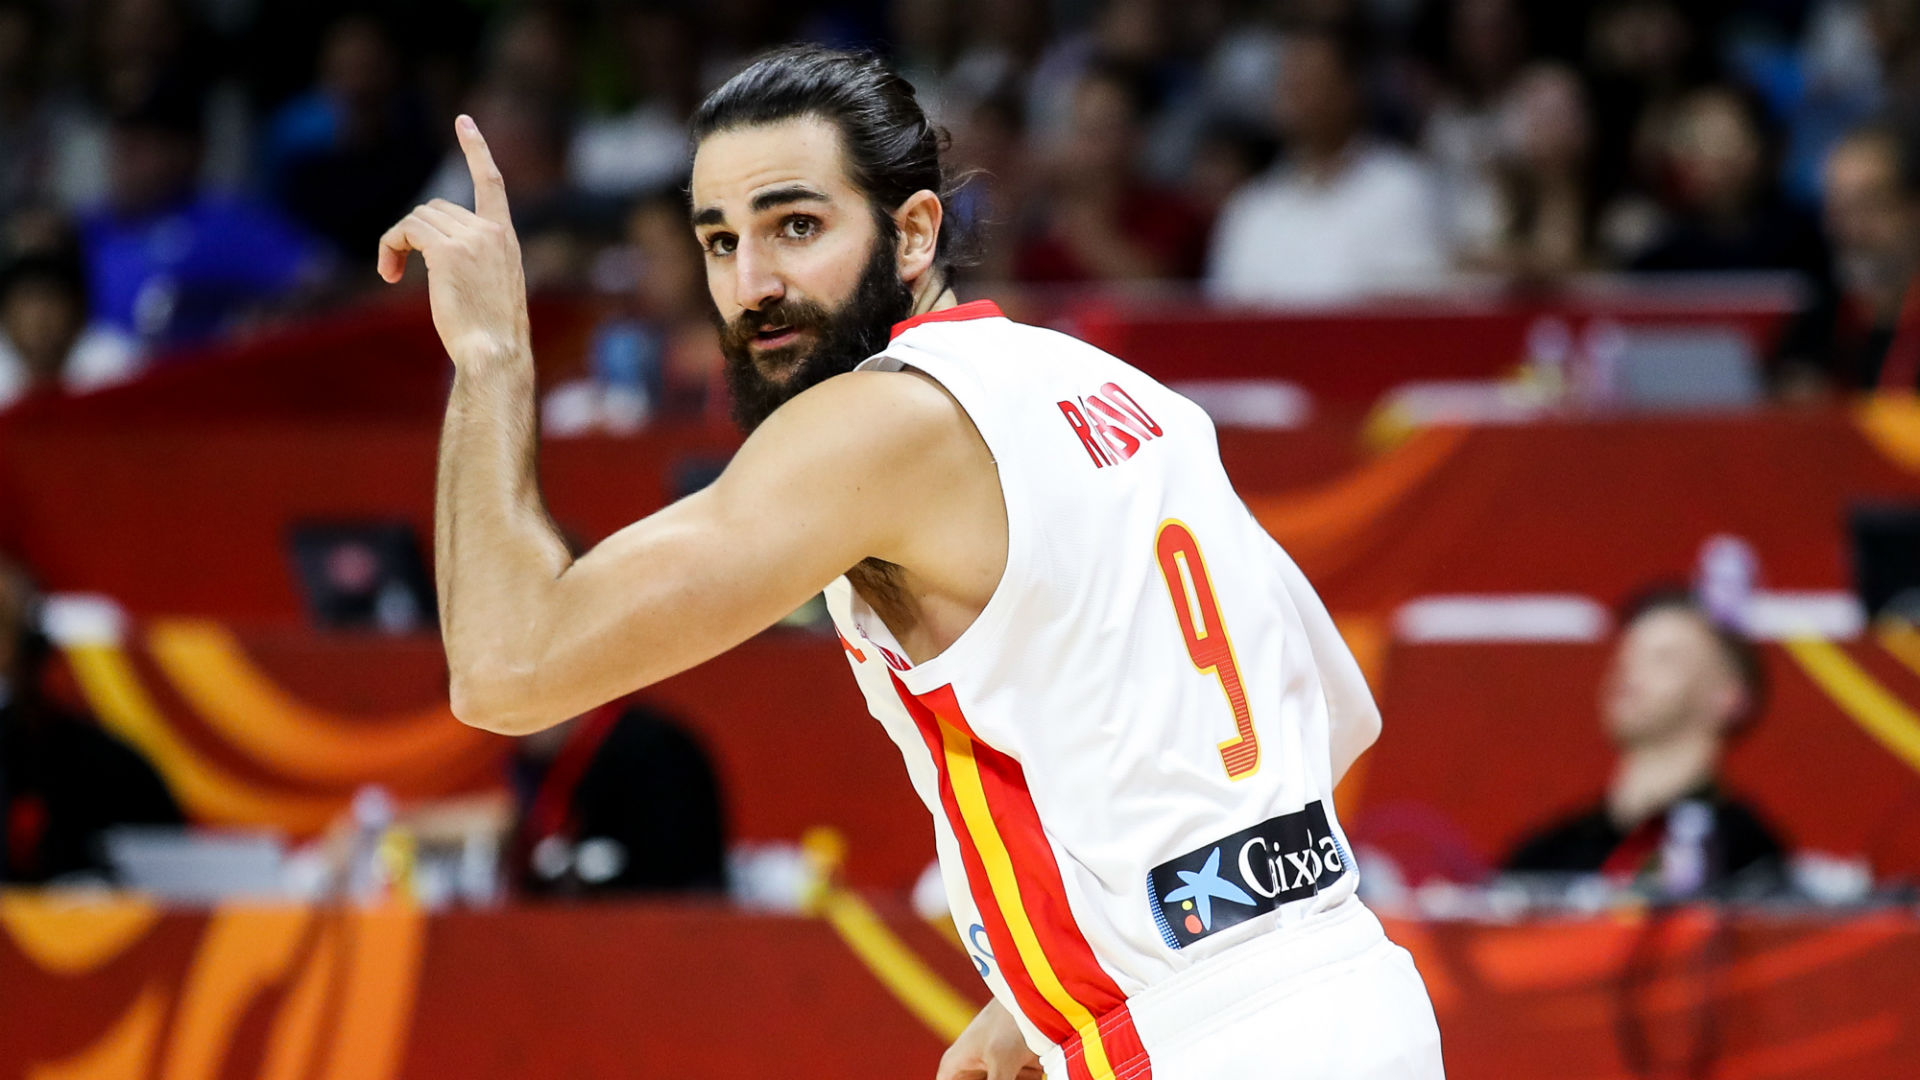 Spain comfortably defeated Argentina 95-75 to win the FIBA World Cup for the first time in 13 years.